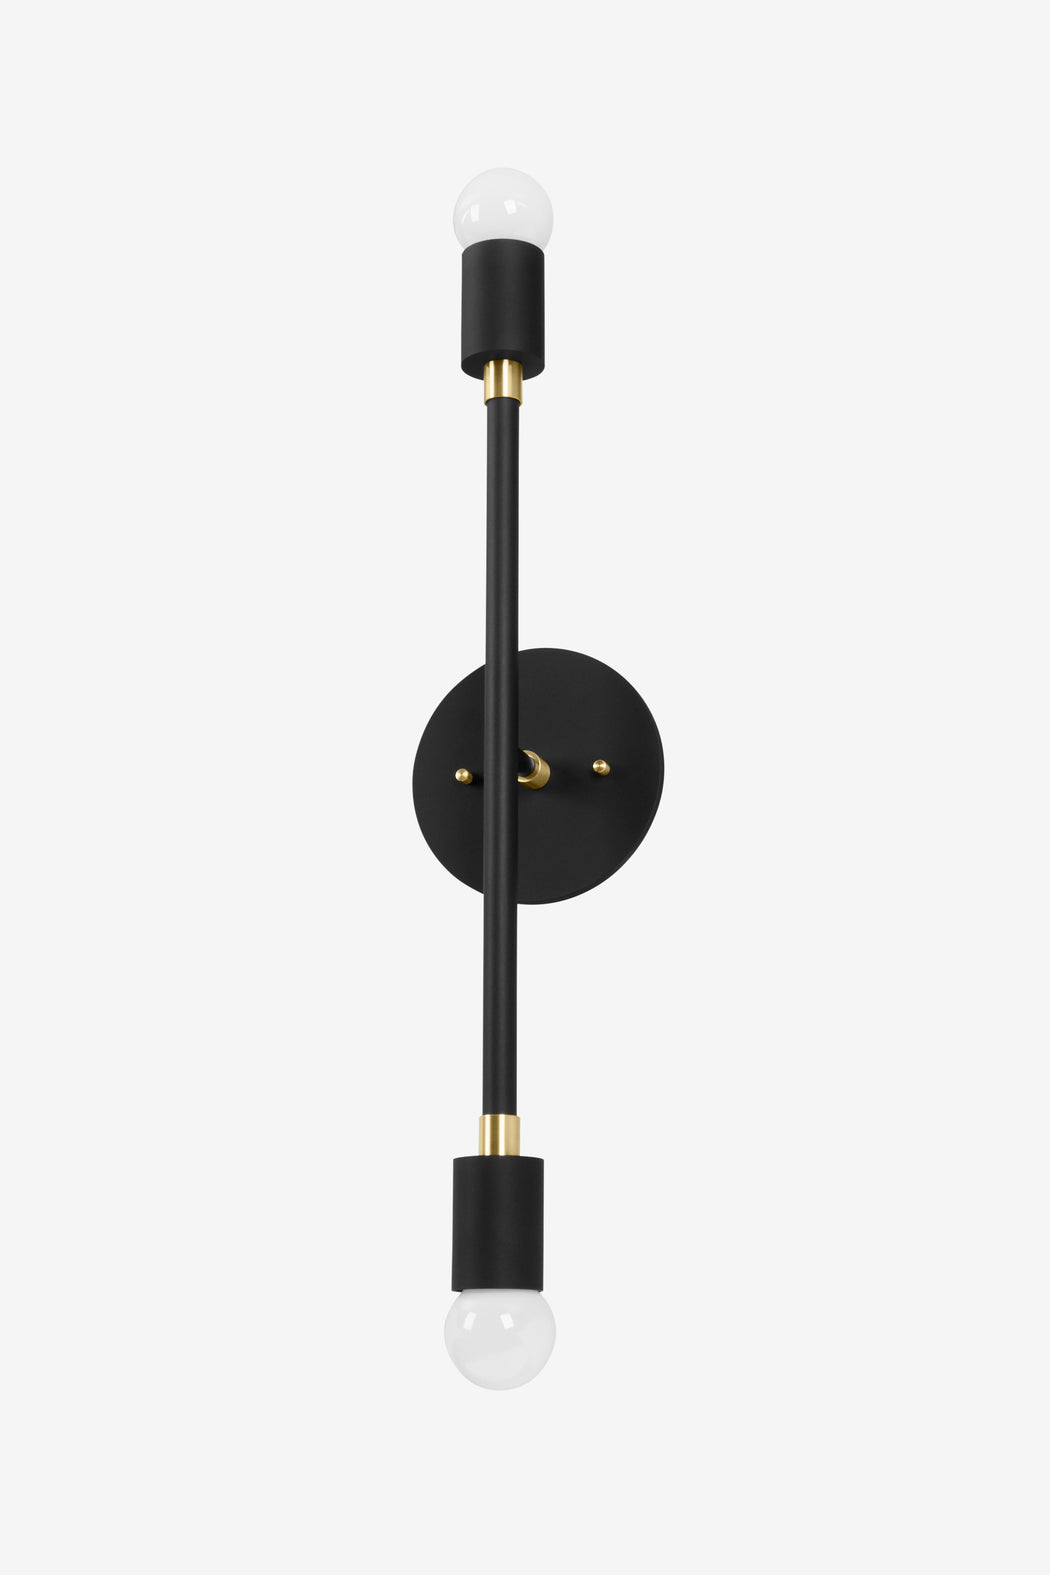 Sausalito Medium / Black and Brass QS